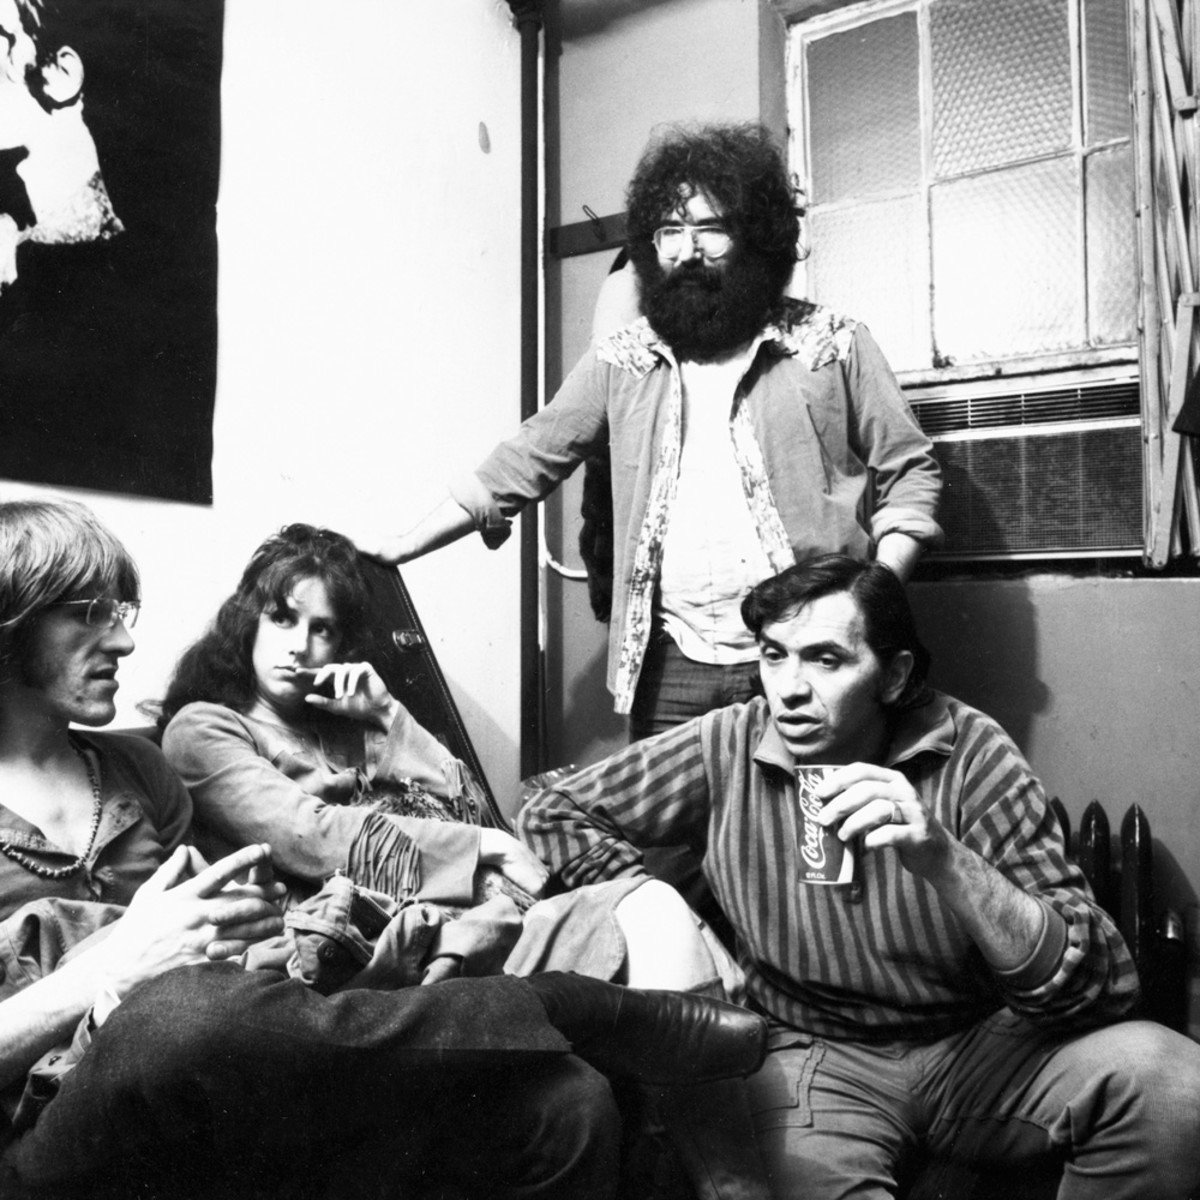 Grace backstage at the Fillmore West